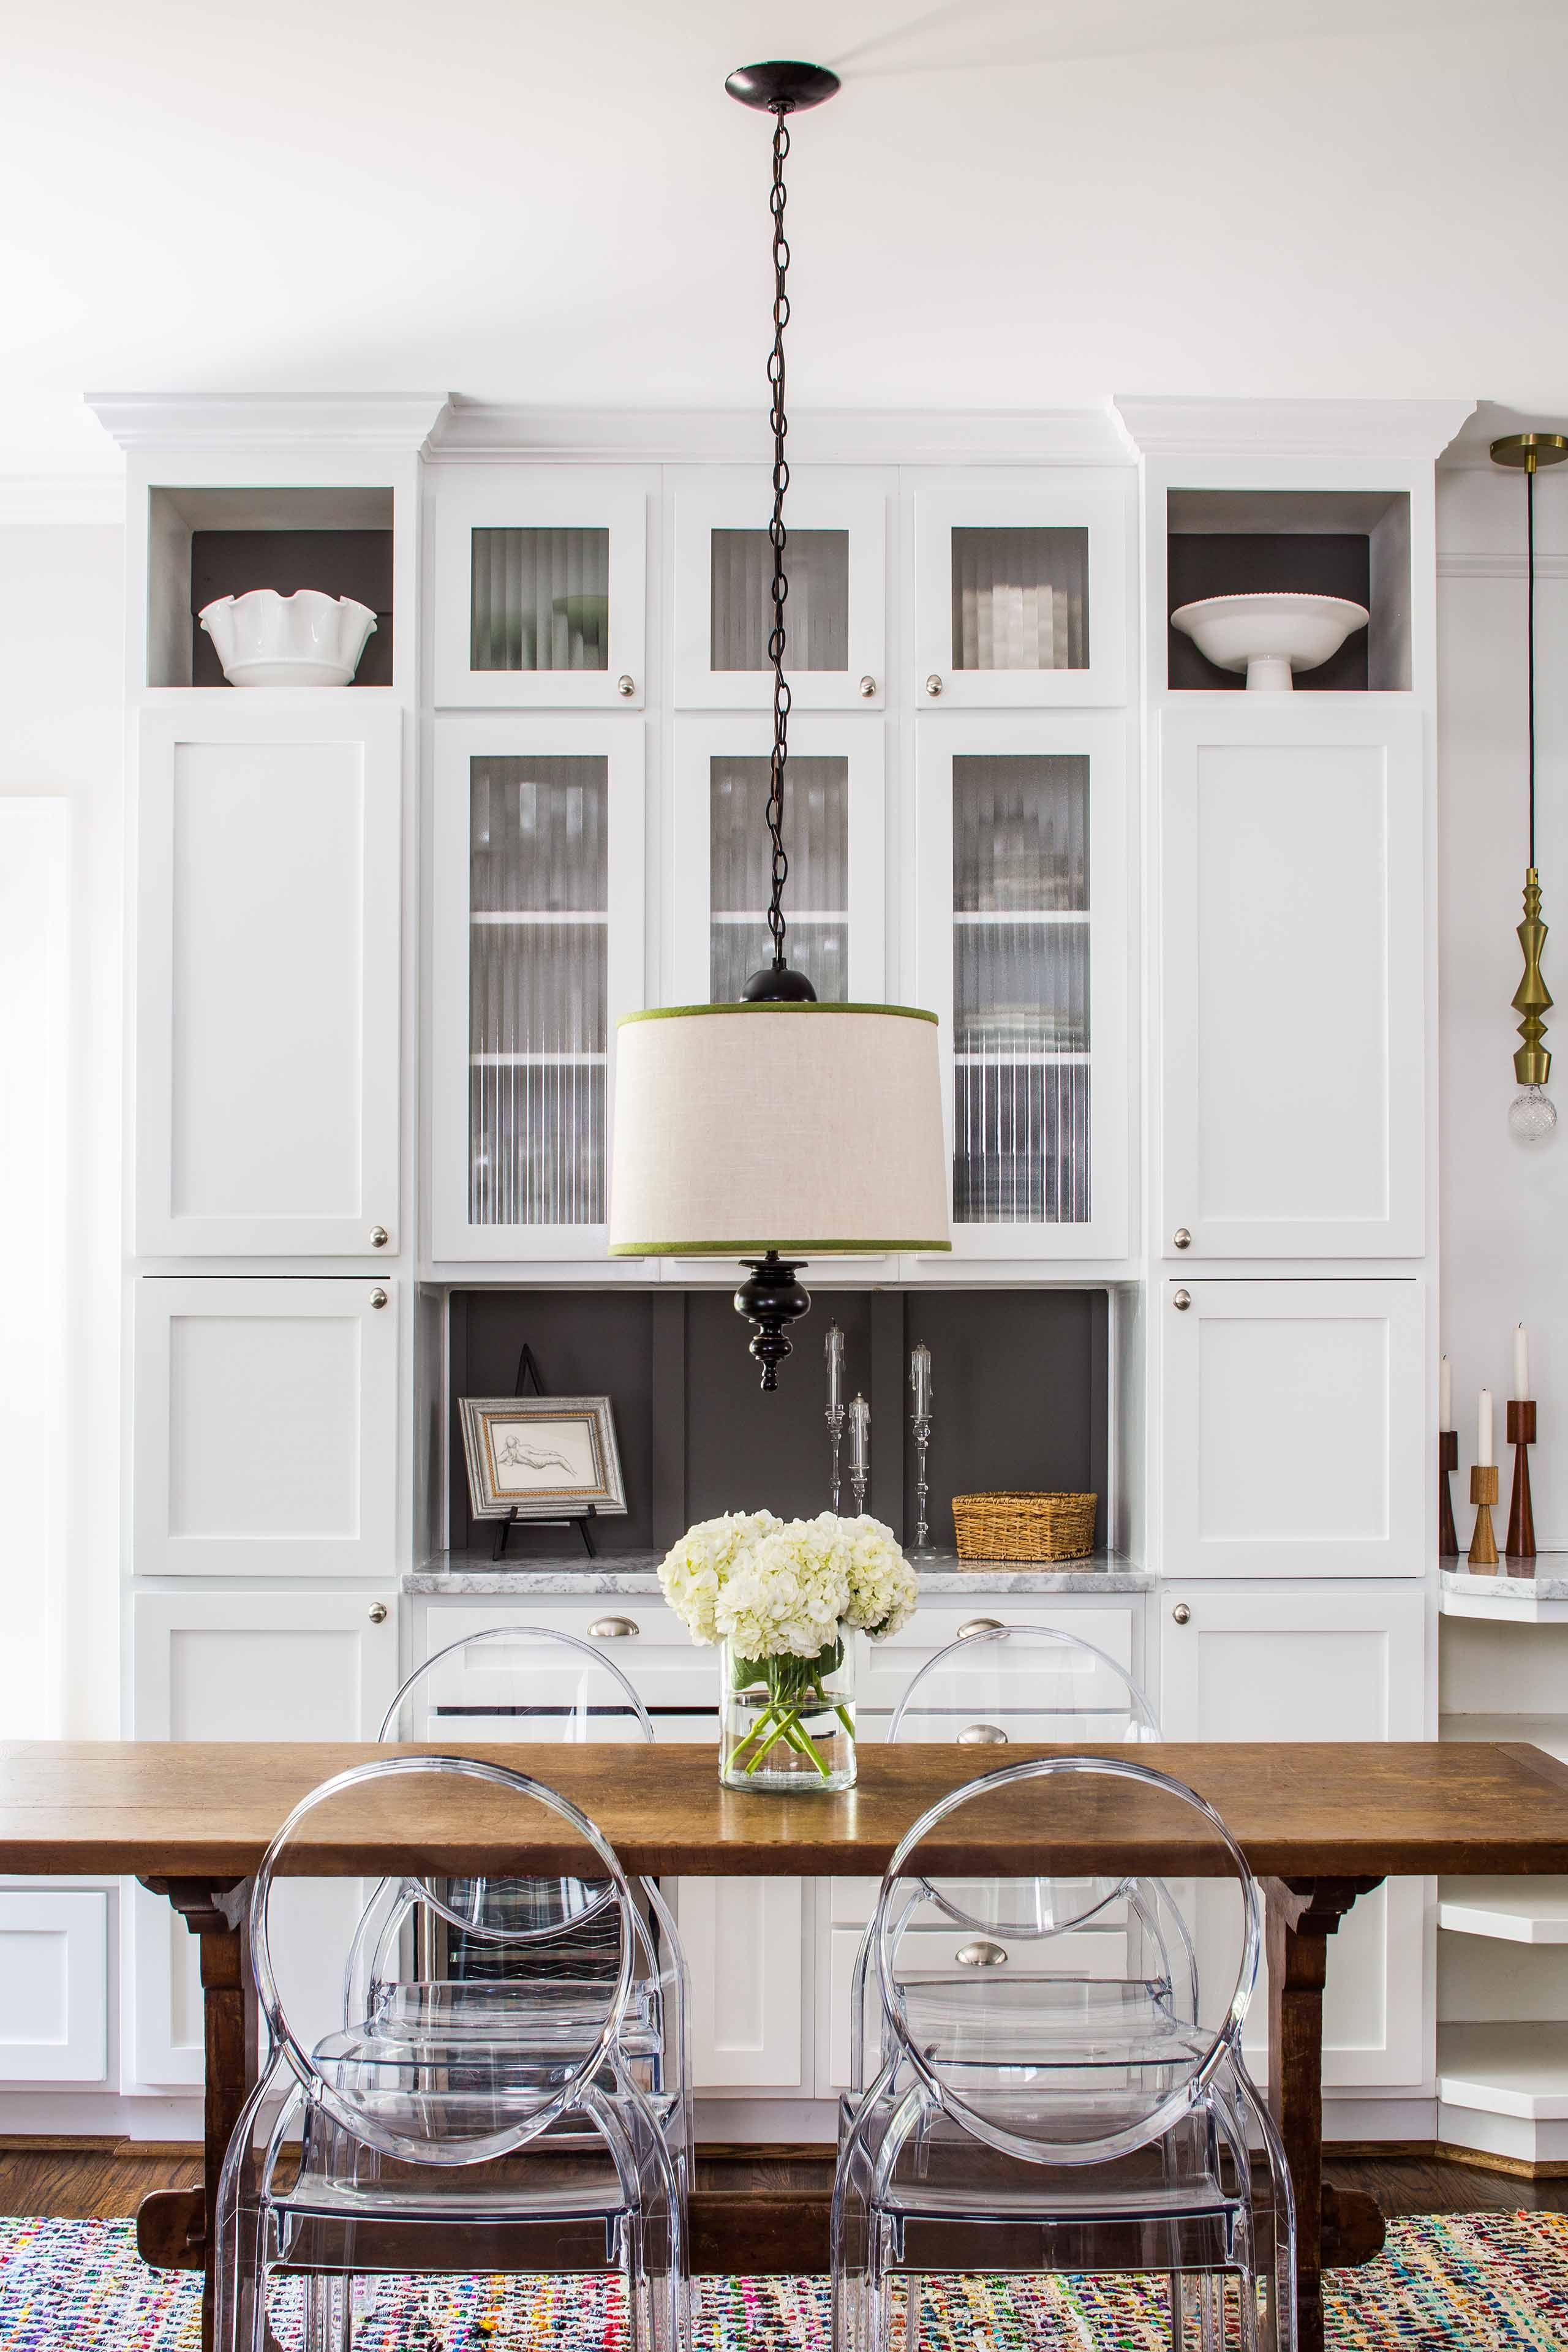 one / subjects of style - Terracotta Design Build Co. | kitchen ...